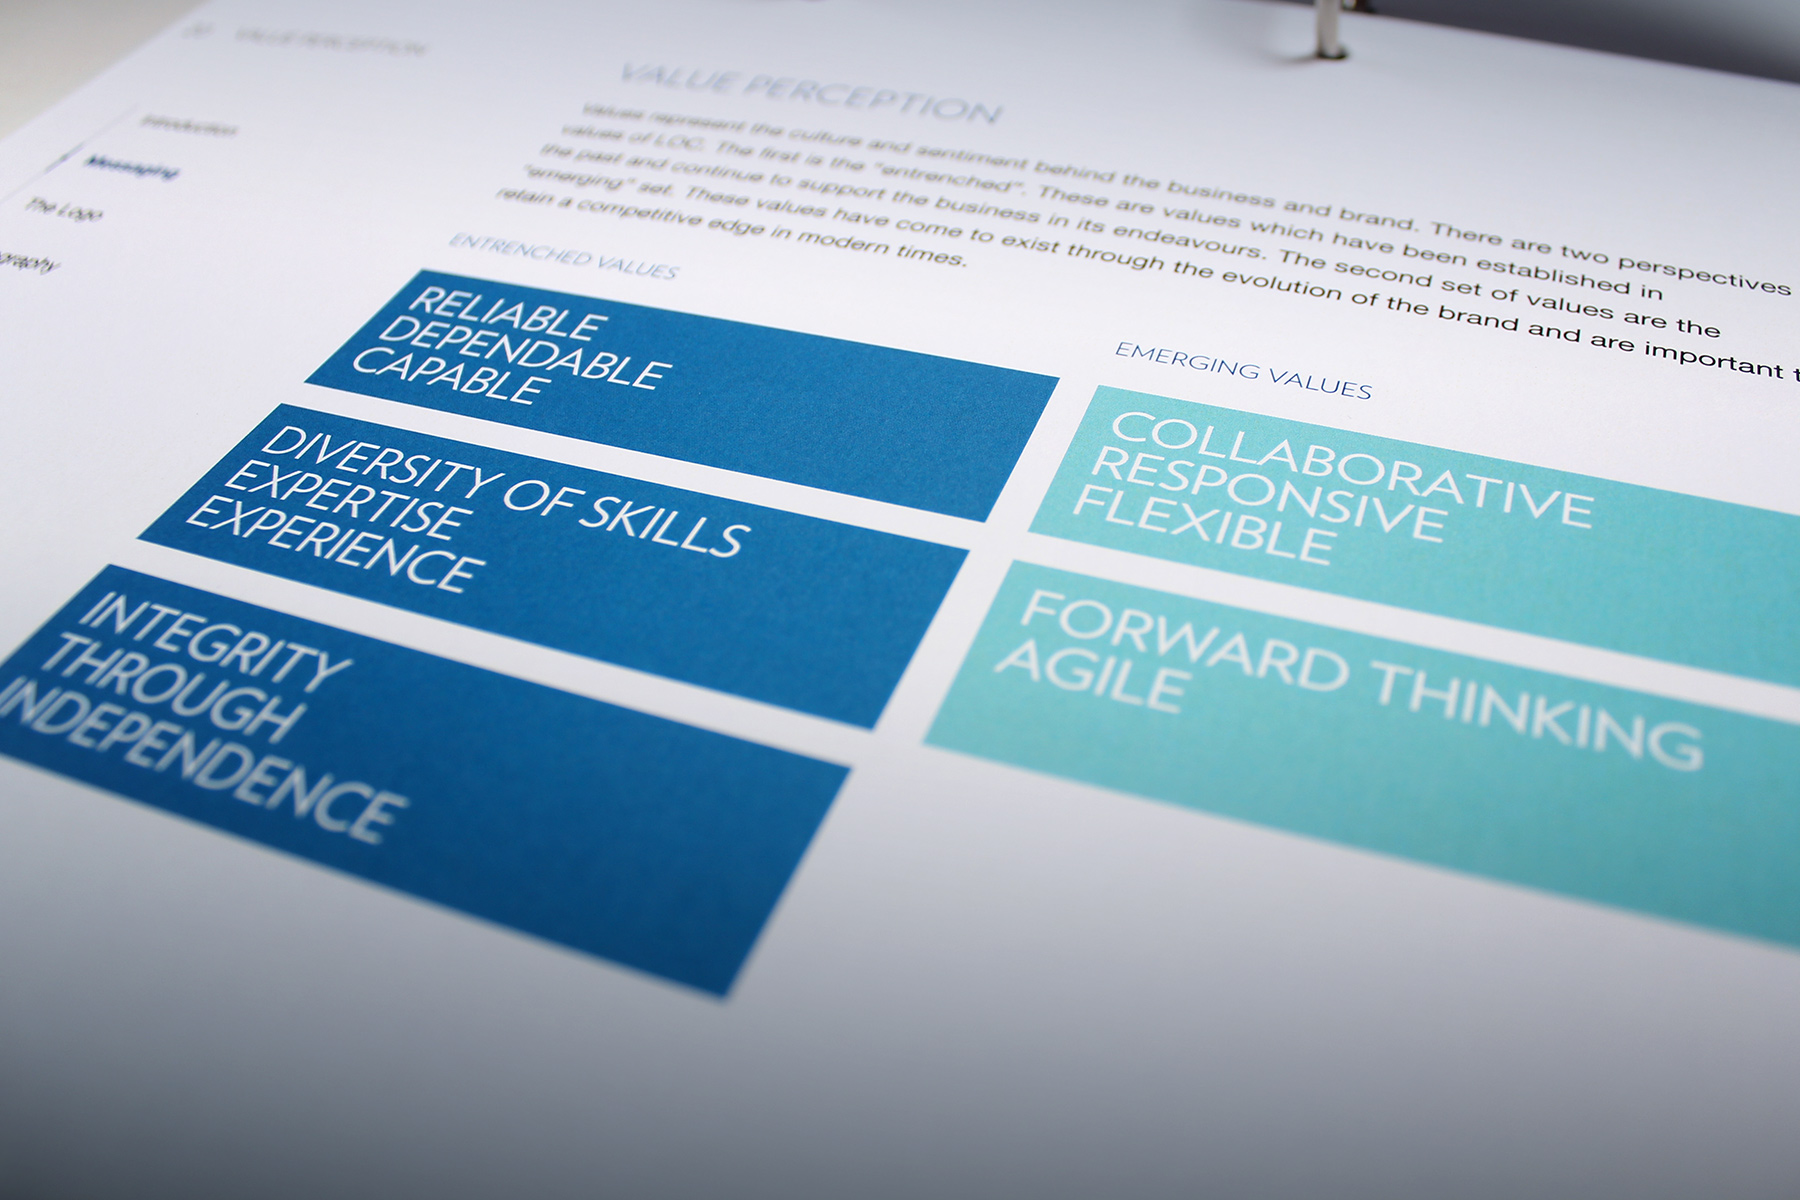 We used research findings and strategic insights to develop a unified global brand positioning.